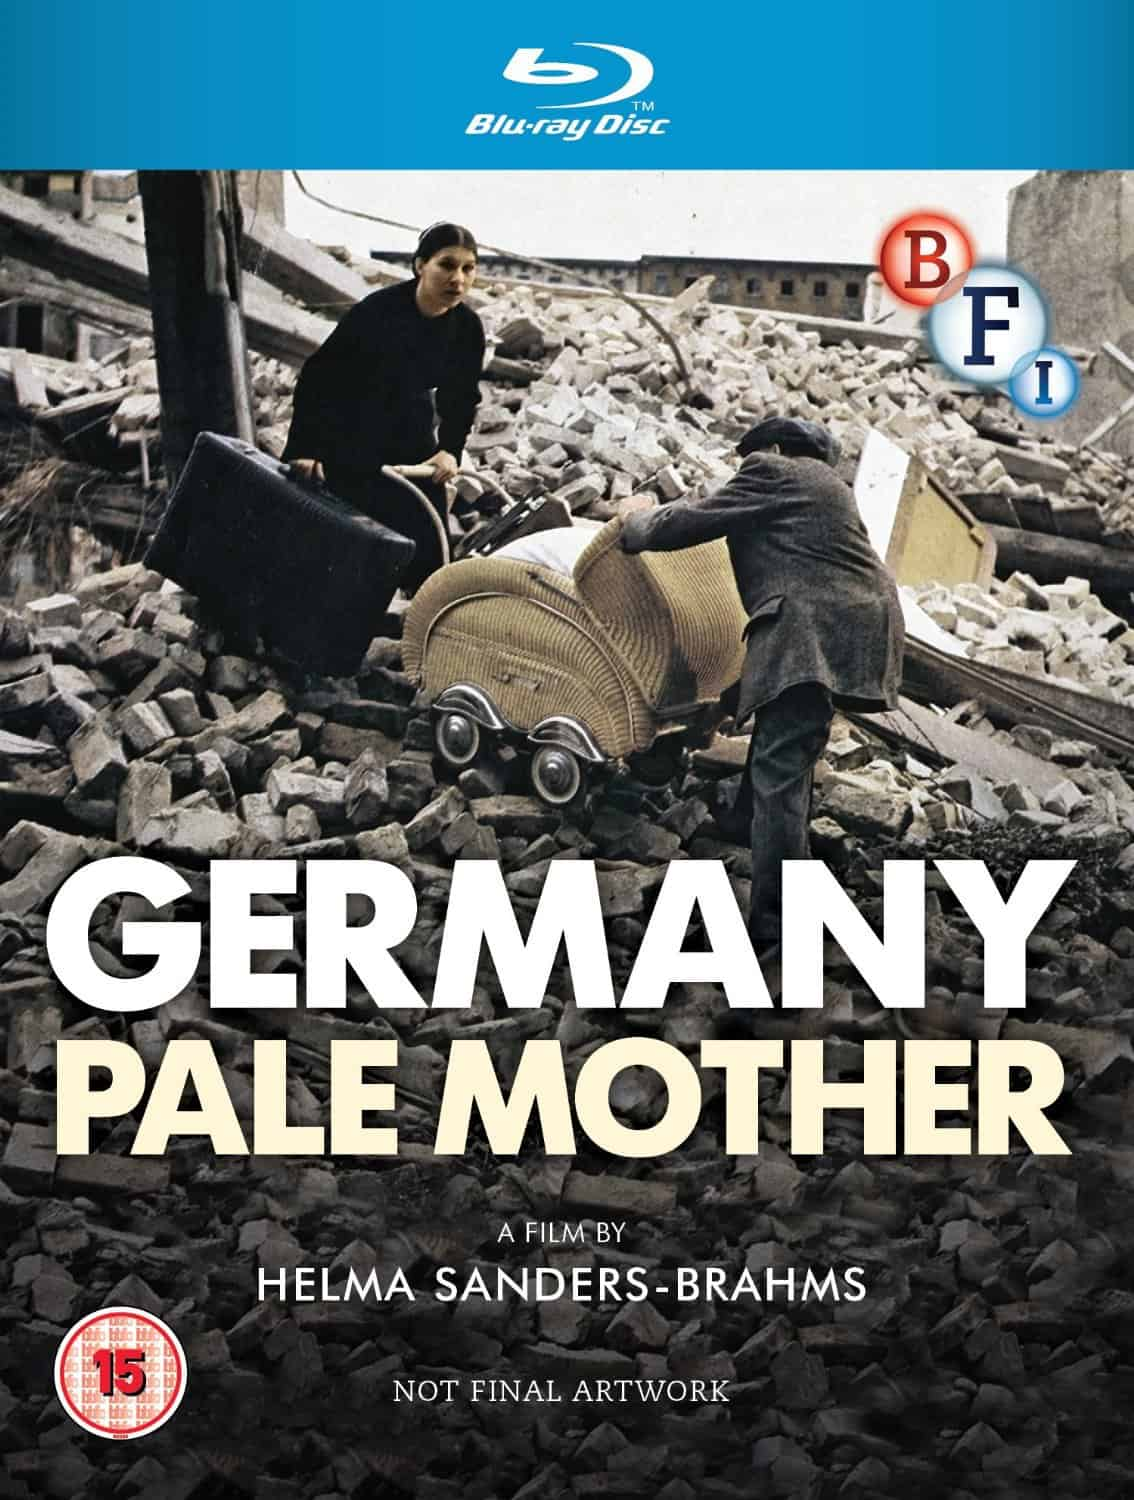 an analysis of the film germany pale mother by helma sanders brahms